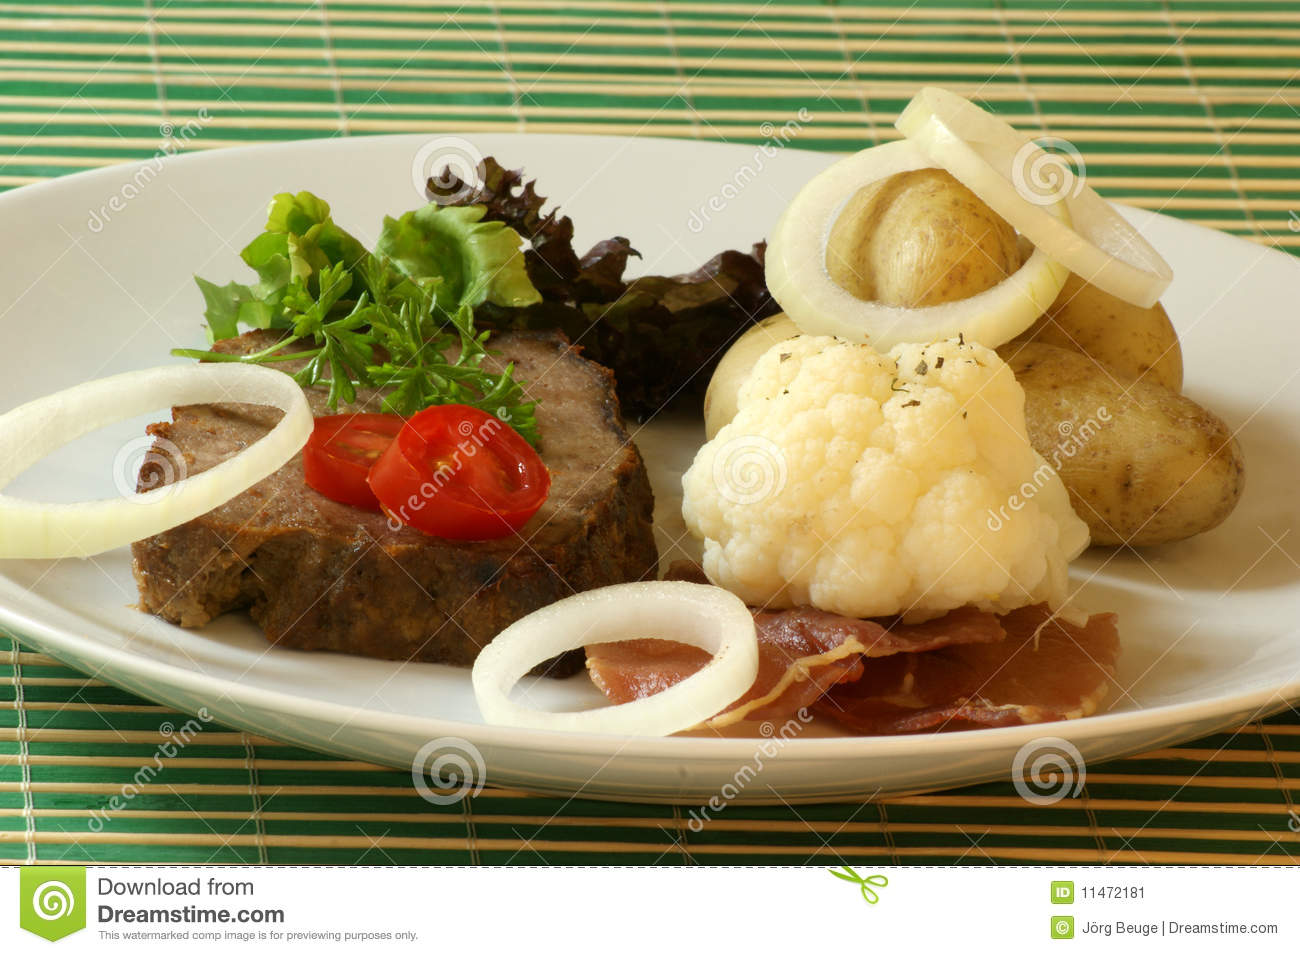 Sliced Meat Loaf With Egetable On A Plate Stock Image   Image